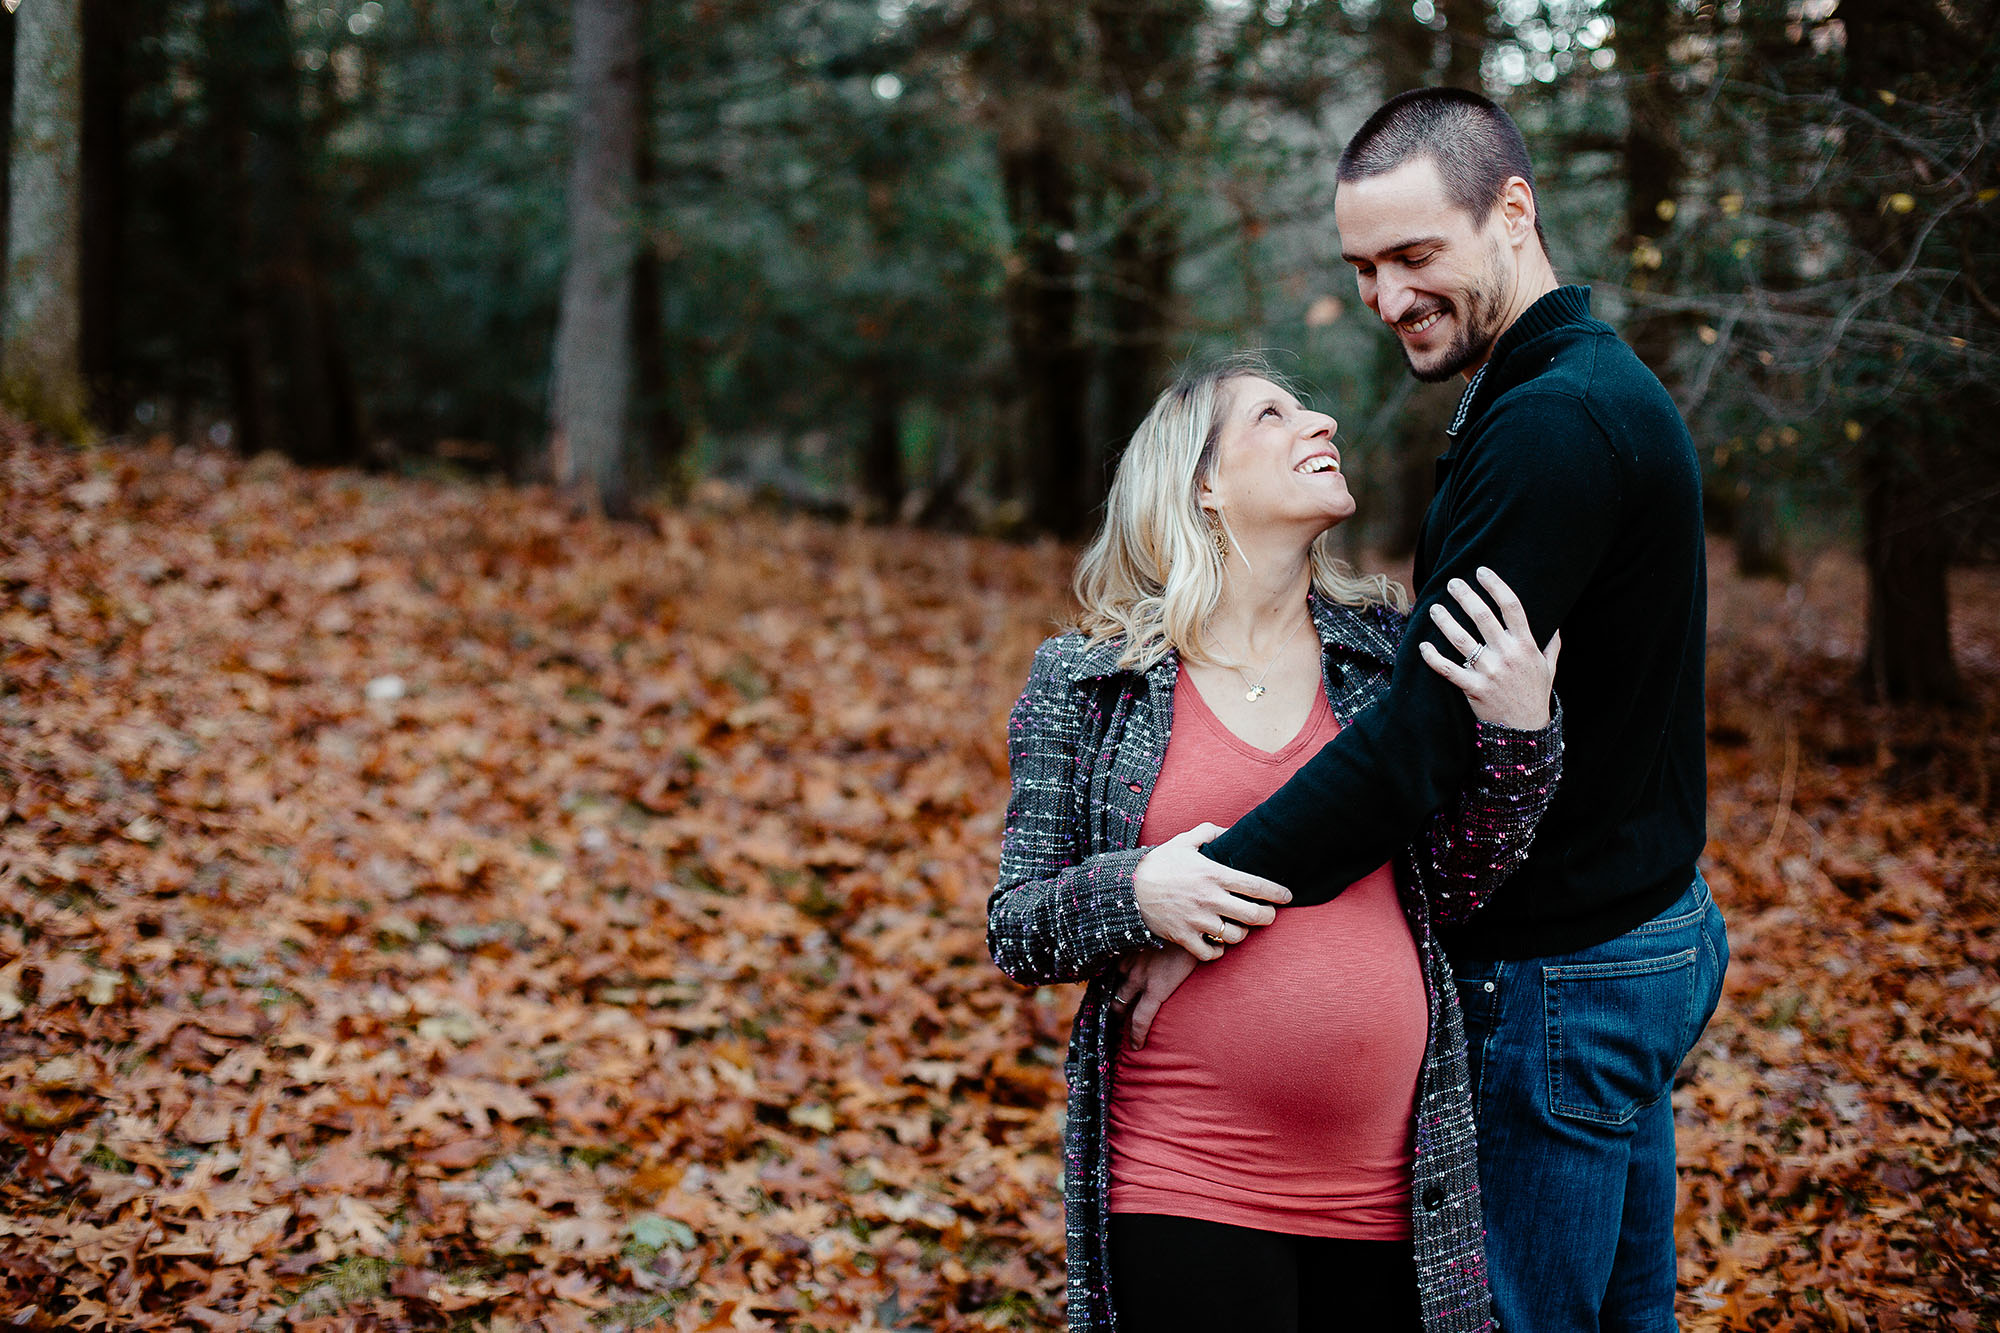 Greater Boston family photographer Joy Uyeno Sudbury husband and pregnant wife in back yard woods